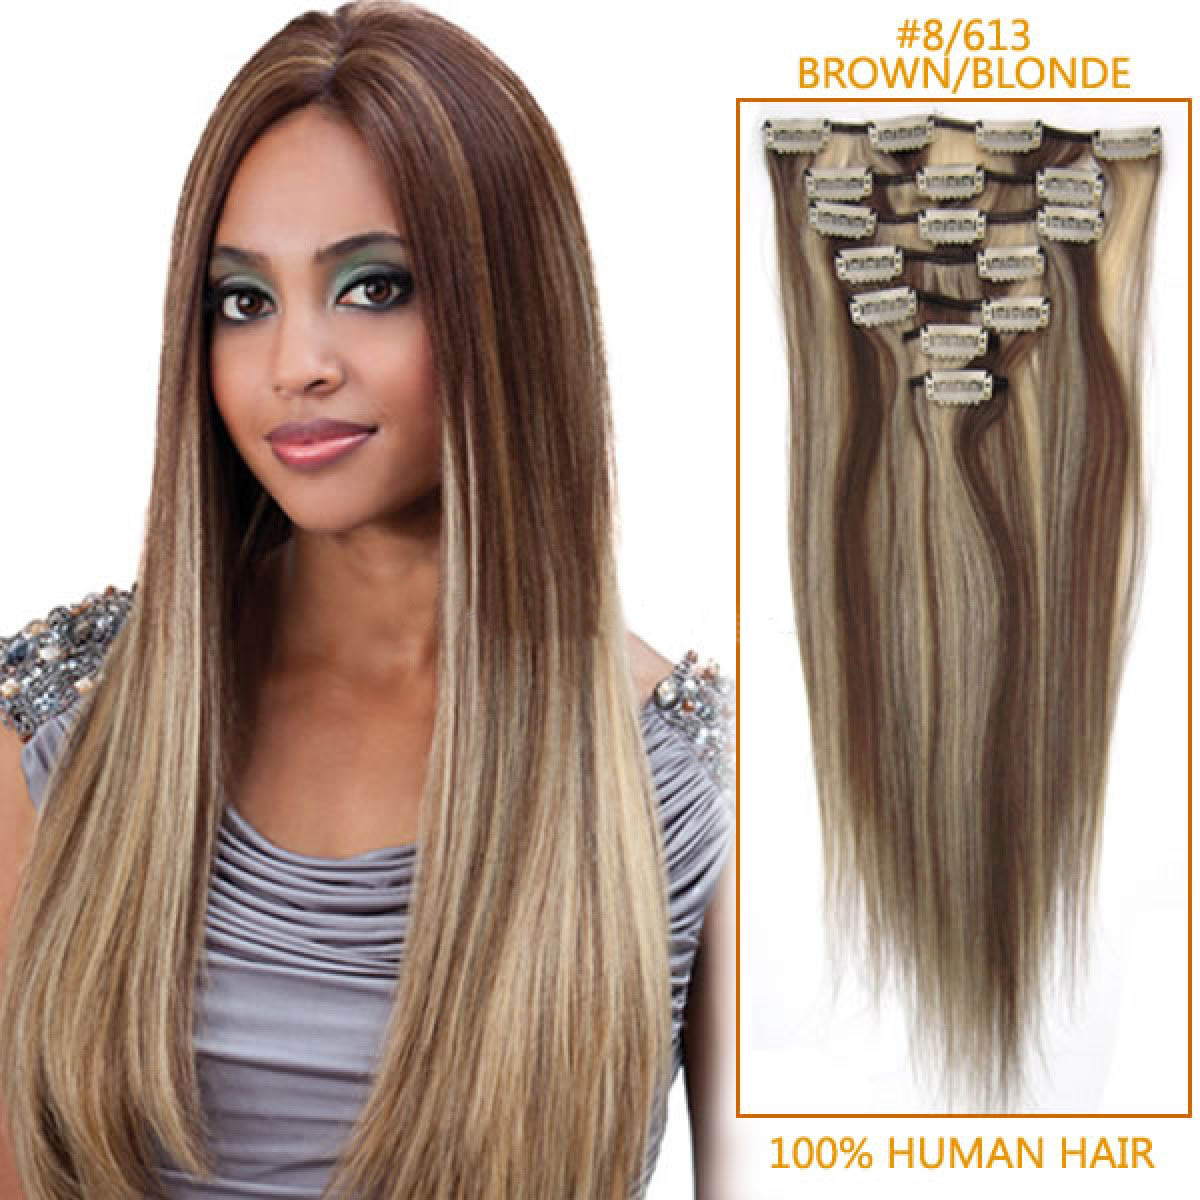 24 Inch Dark Brown Hair Extensions Cheap Trendy Hairstyles In The Usa